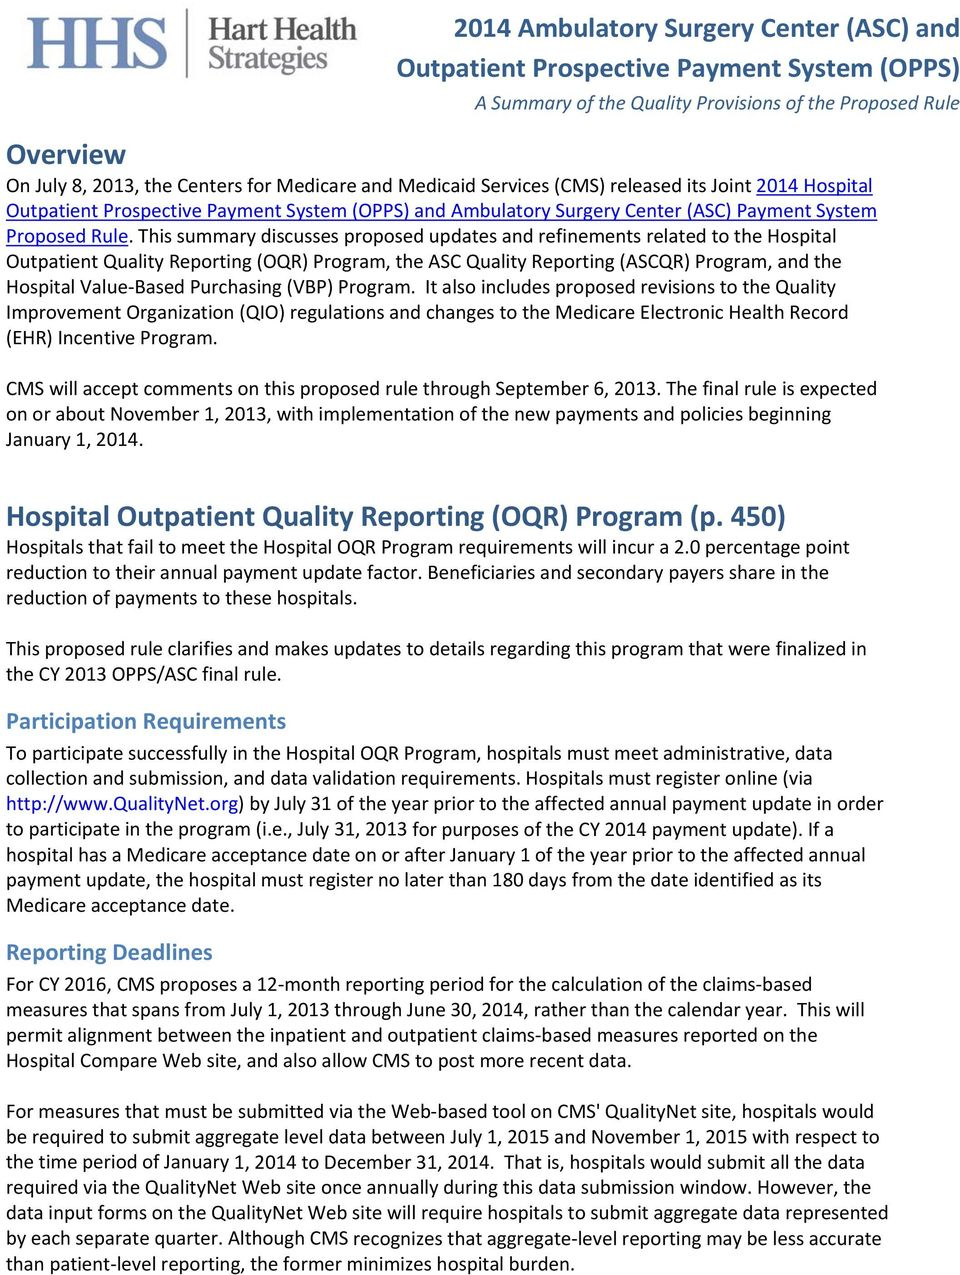 This summary discusses proposed updates and refinements related to the Hospital Outpatient Quality Reporting (OQR) Program, the ASC Quality Reporting (ASCQR) Program, and the Hospital Value Based